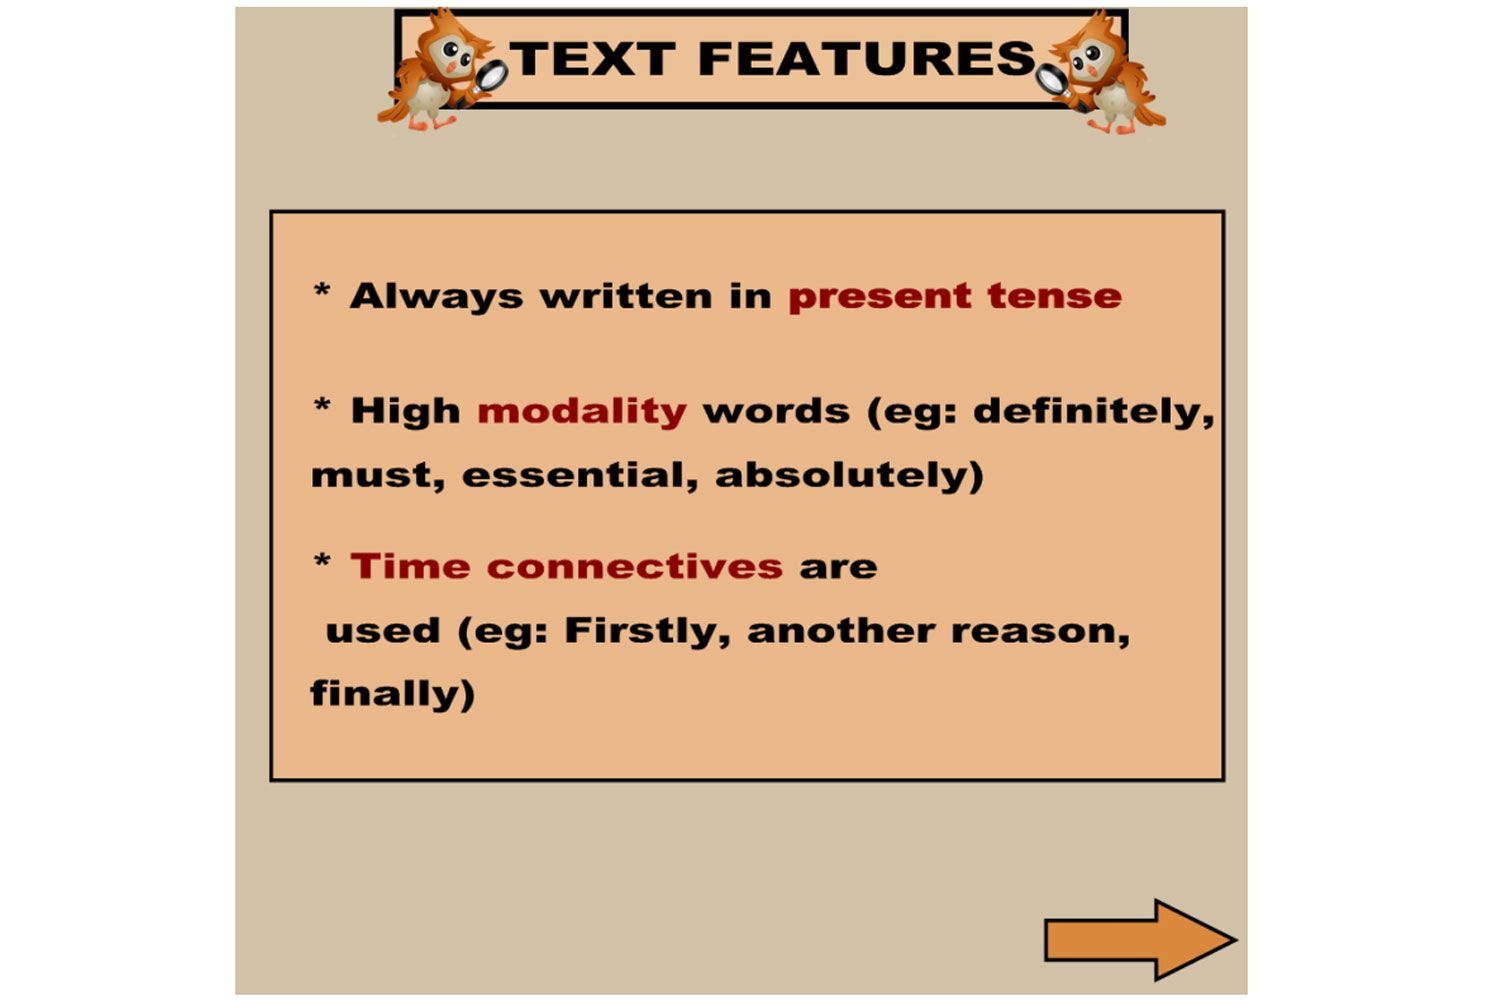 Teach Your Students The Features Of An Exposition Text